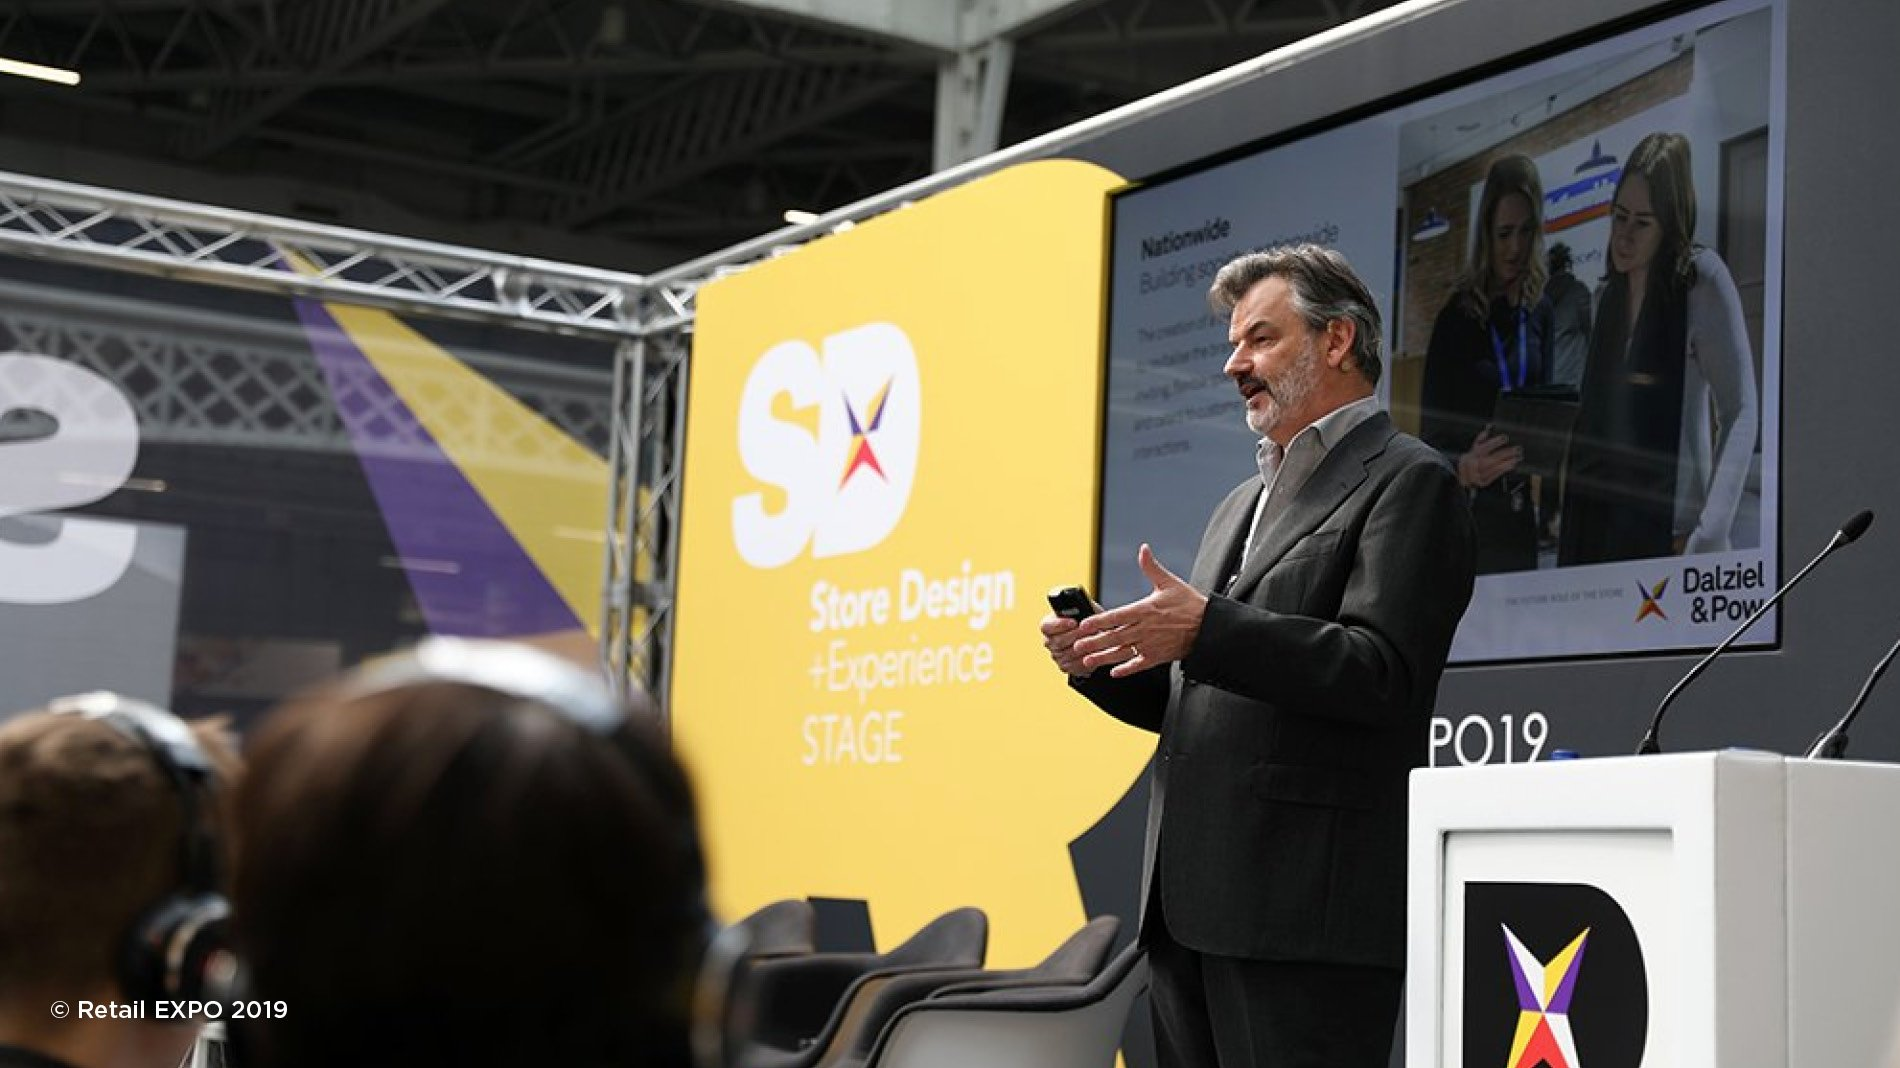 Howard Saunders giving a talk at the Retail EXPO 2019